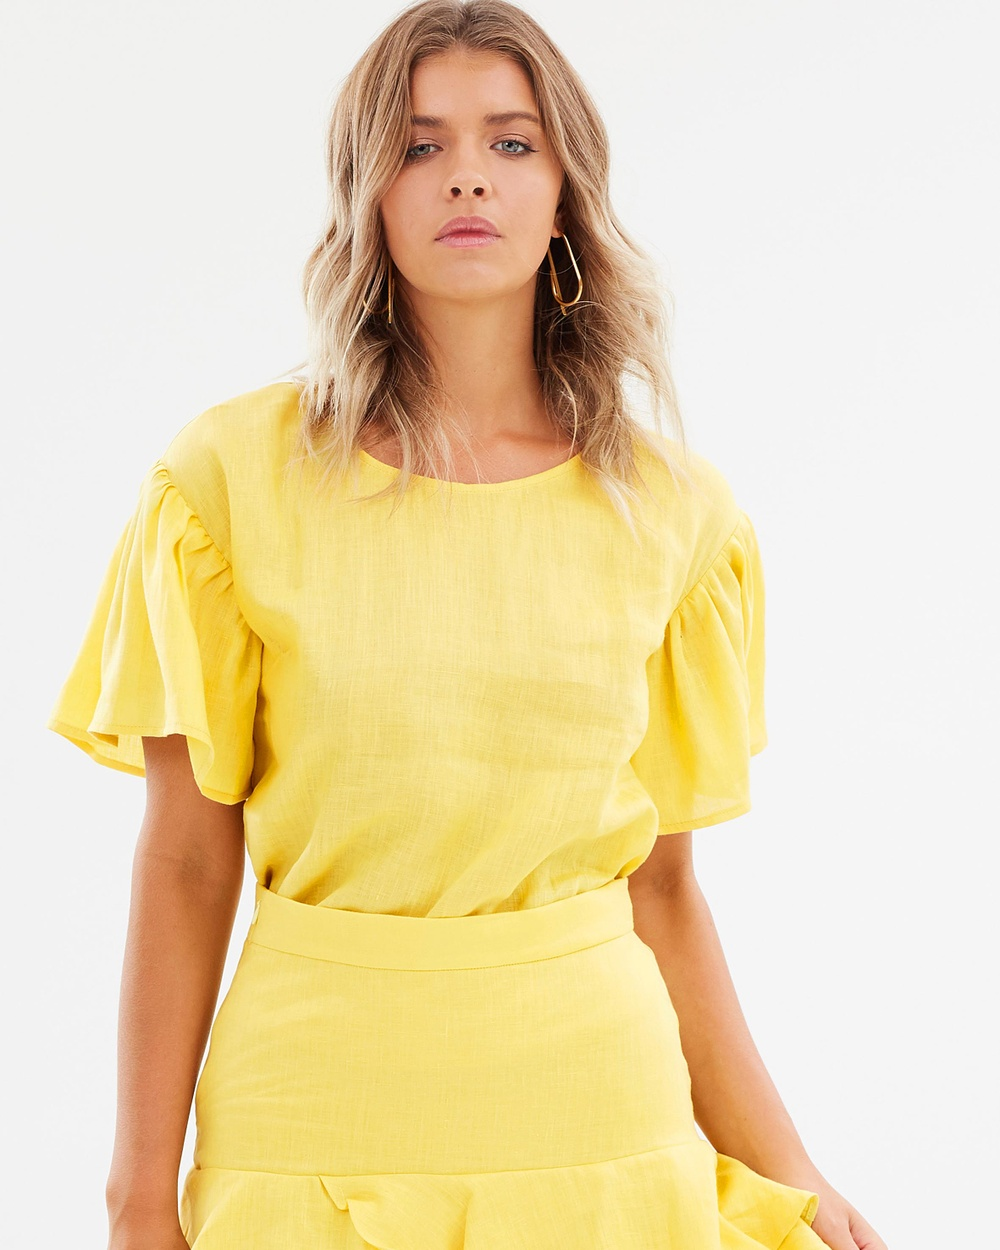 Backstage Venice Top Tops Yellow Venice Top